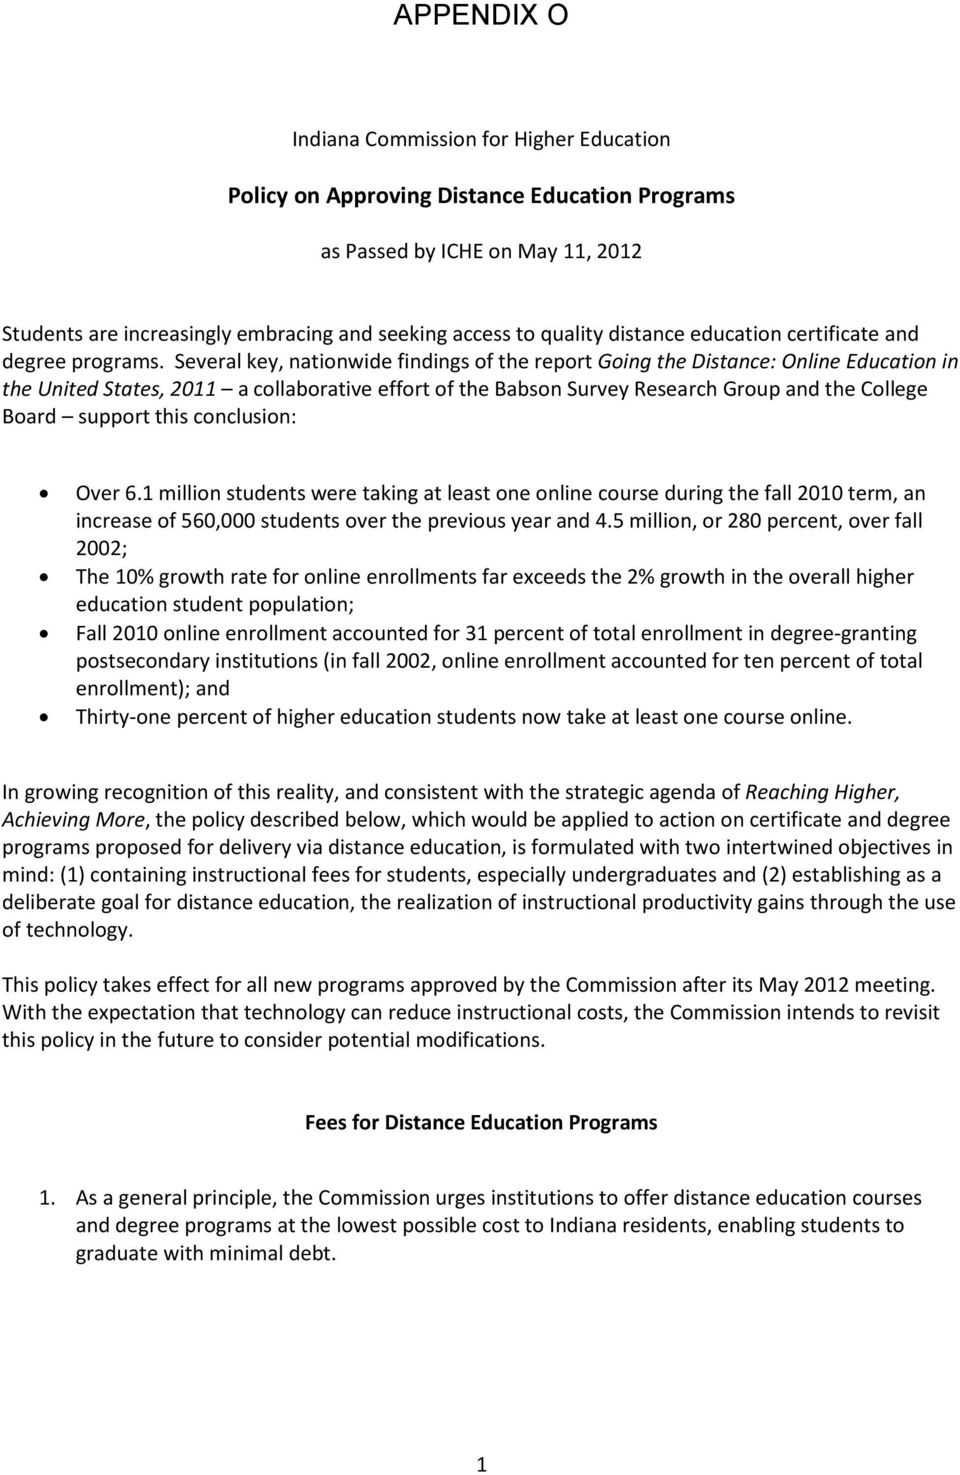 Several key, nationwide findings of the report Going the Distance: Online Education in the United States, 2011 a collaborative effort of the Babson Survey Research Group and the College Board support